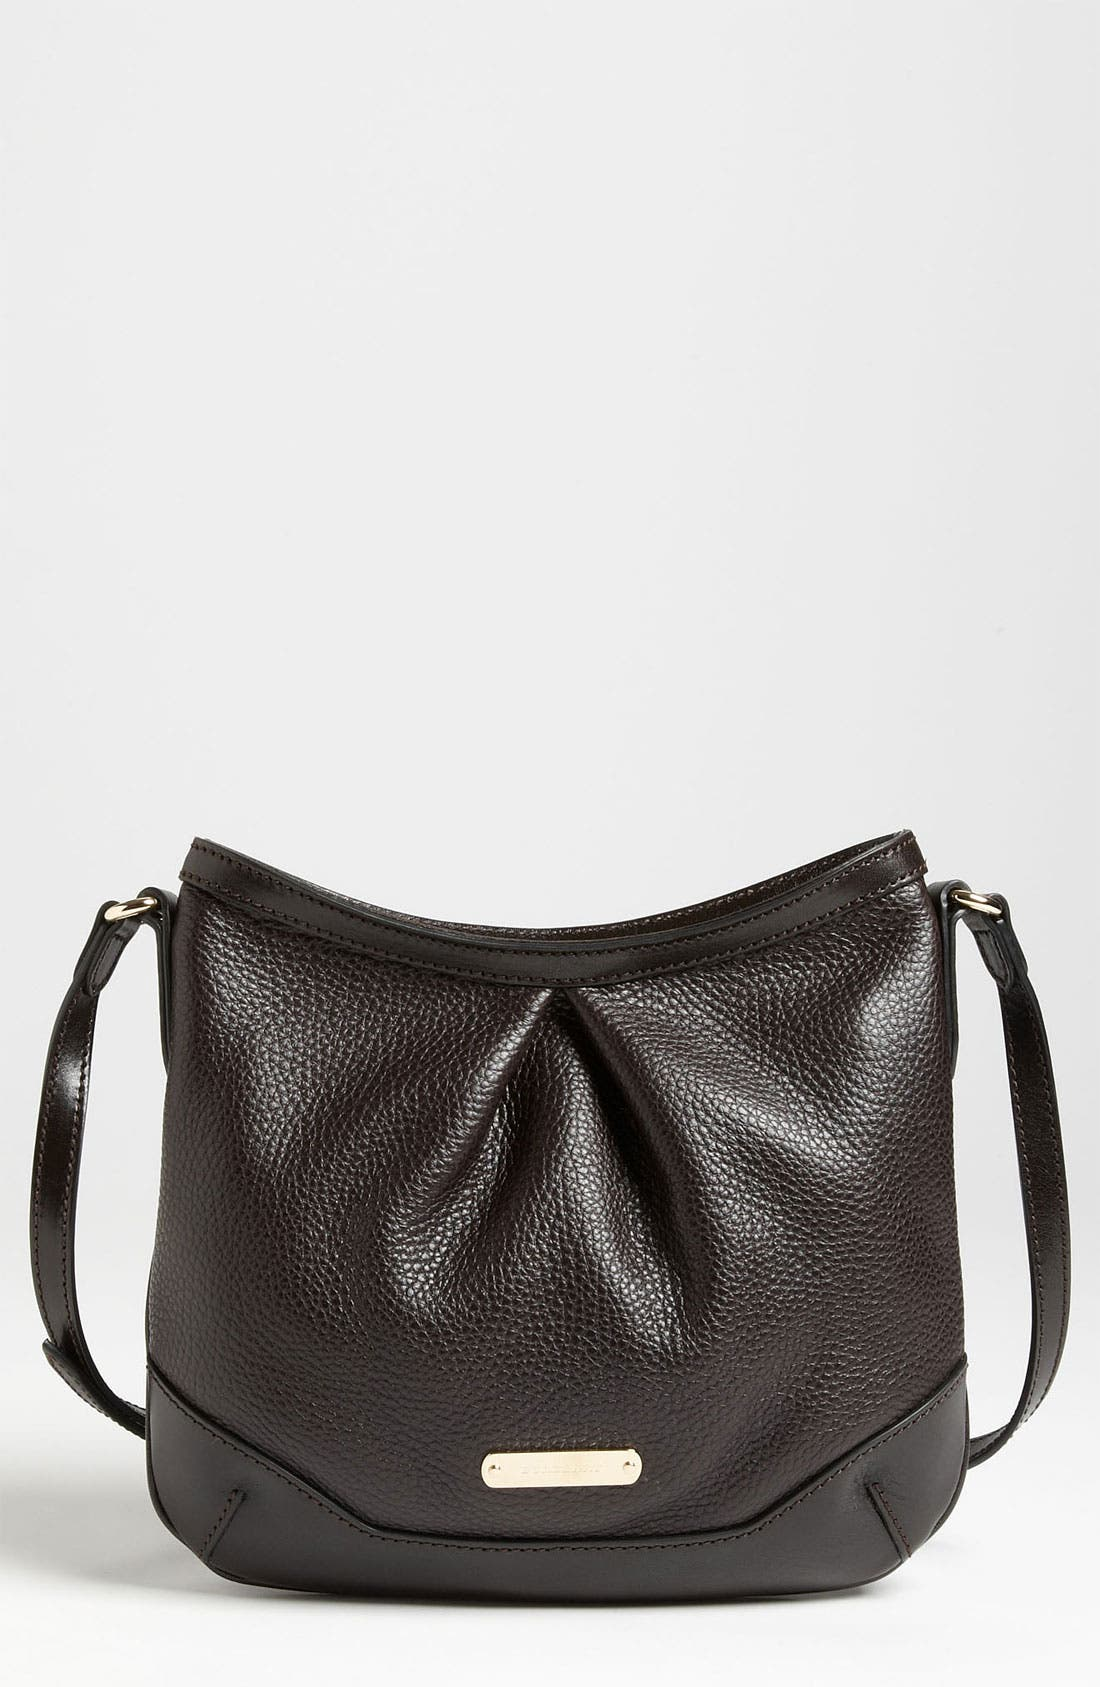 Alternate Image 1 Selected - Burberry 'London Grainy' Leather Crossbody Bag